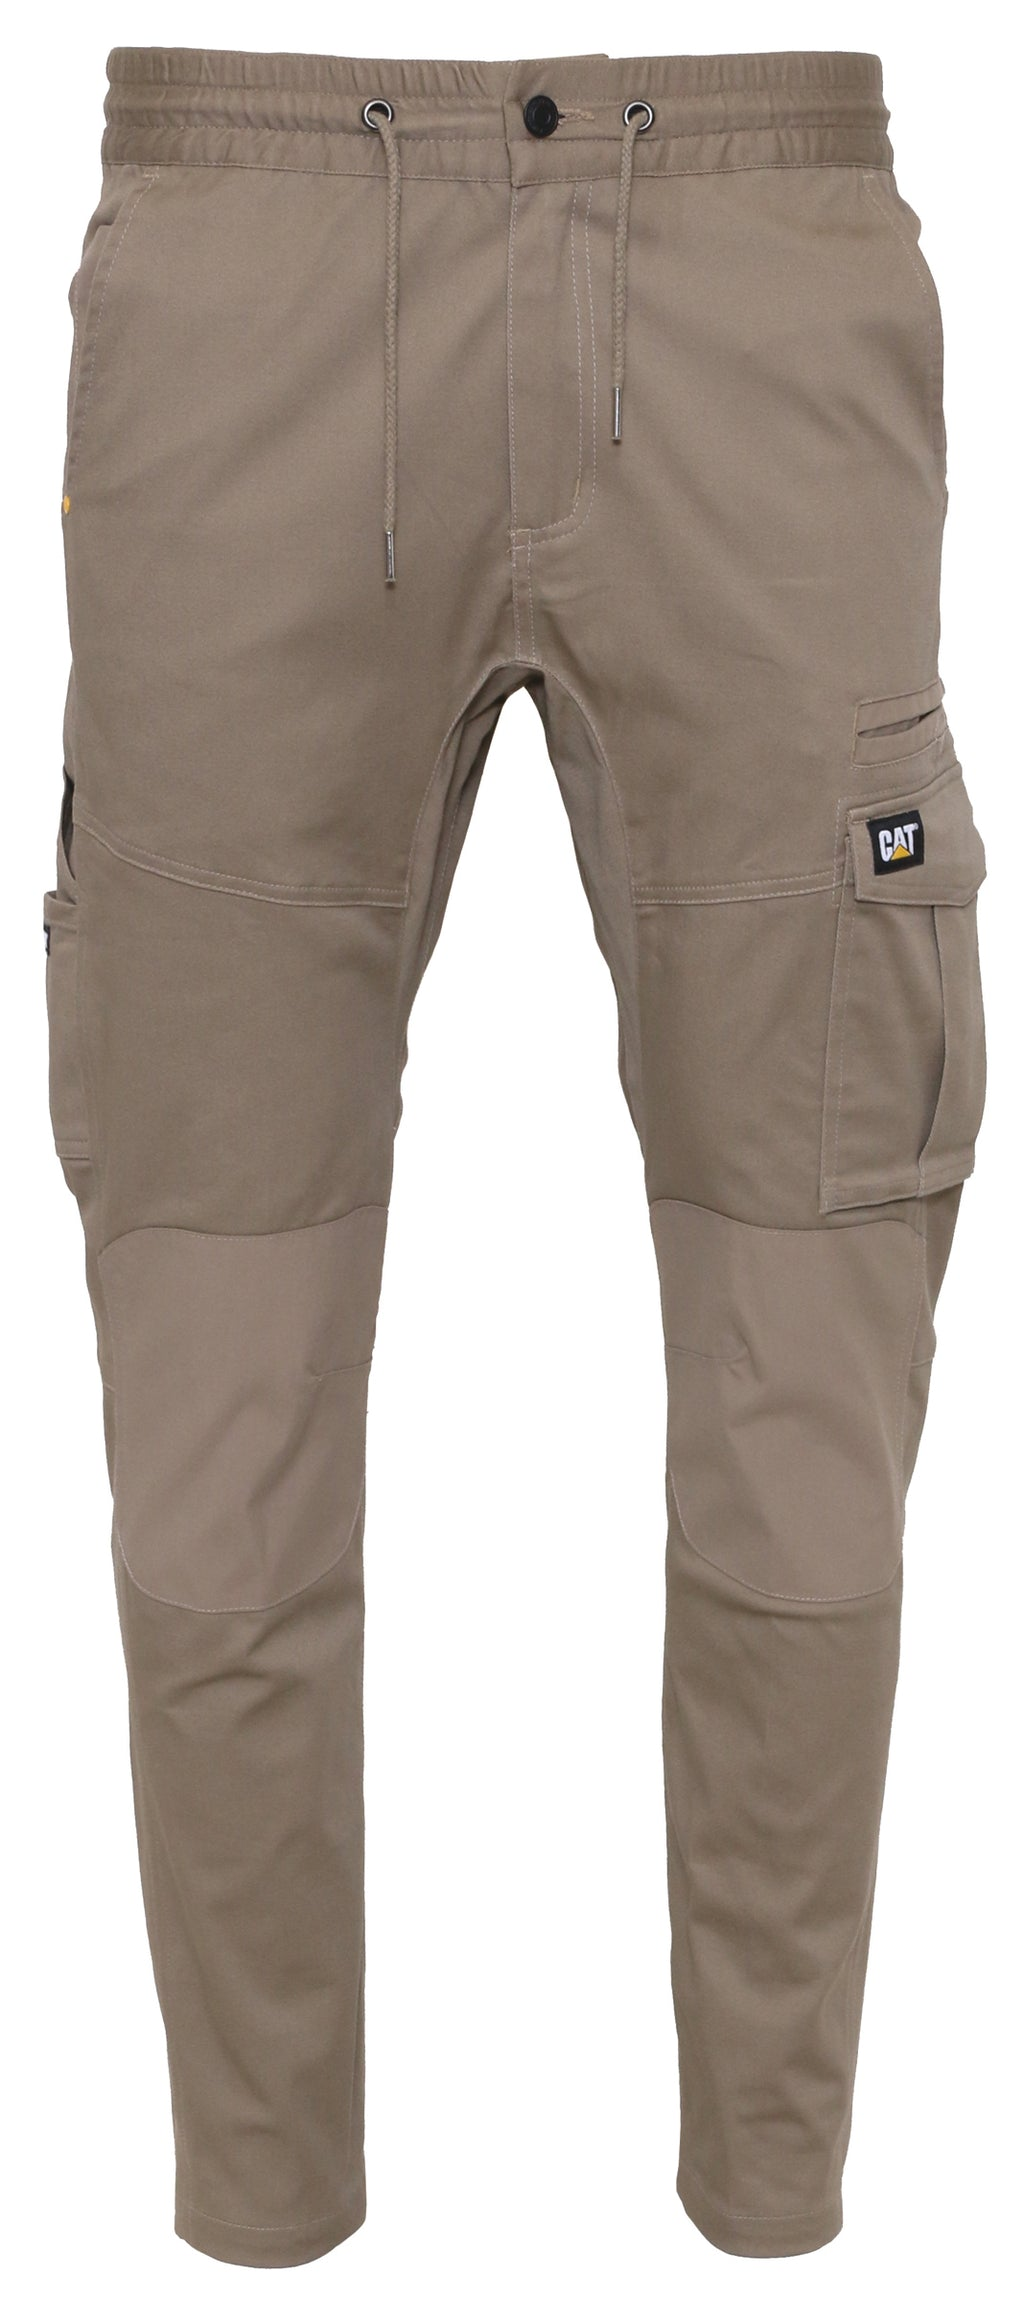 Pant Cat Dynamic Khaki 30R